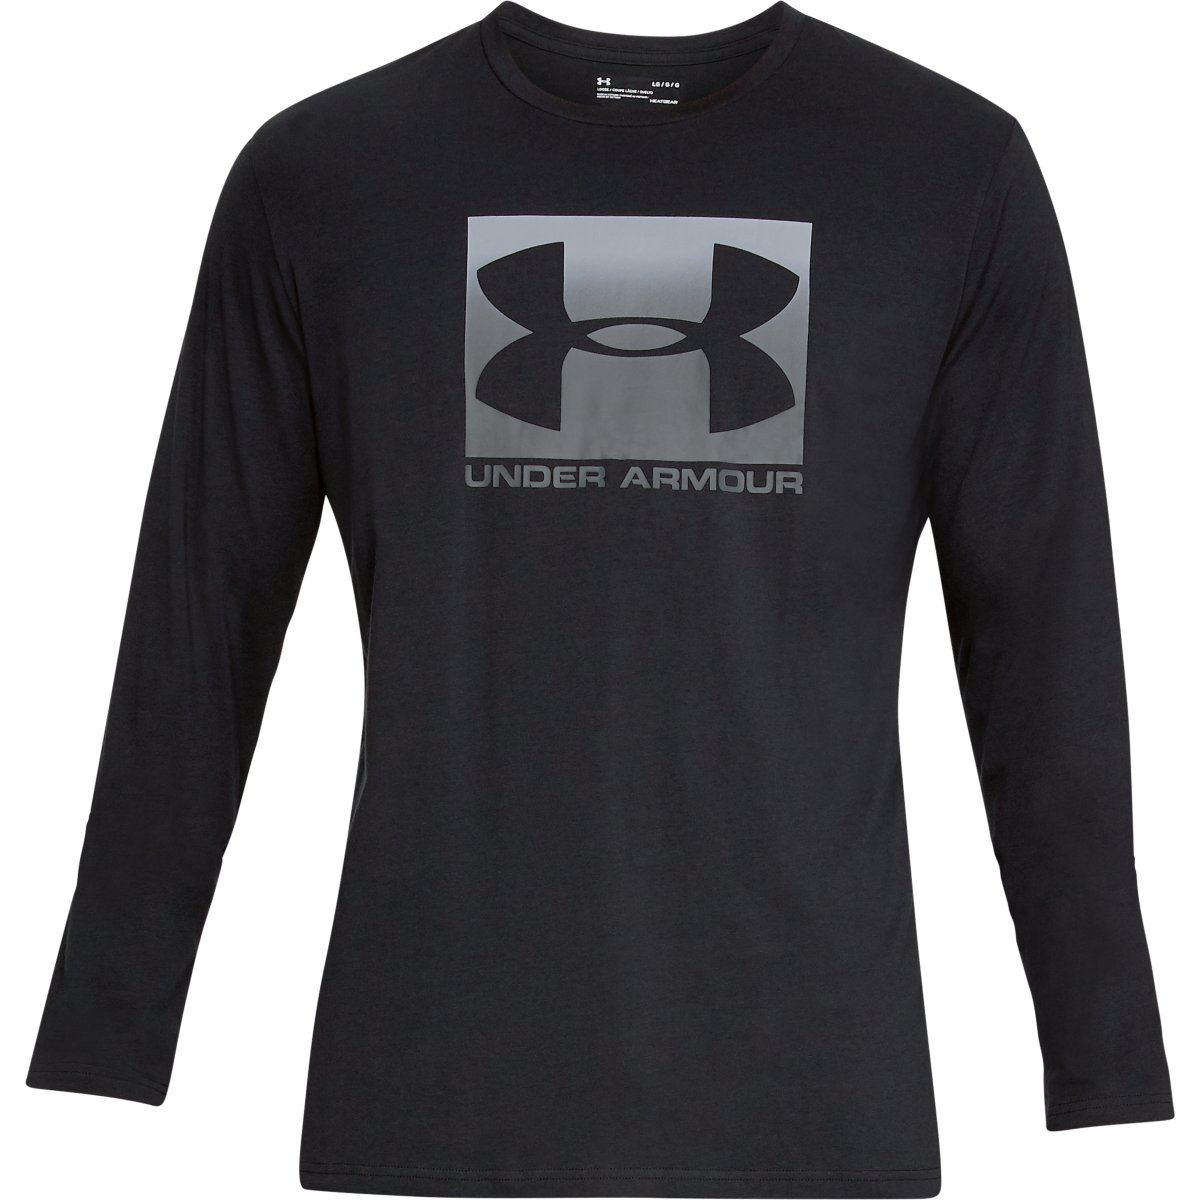 Under Armour Men's Ua Sportstyle Boxed Graphic Long-Sleeve Tee - Black, XL